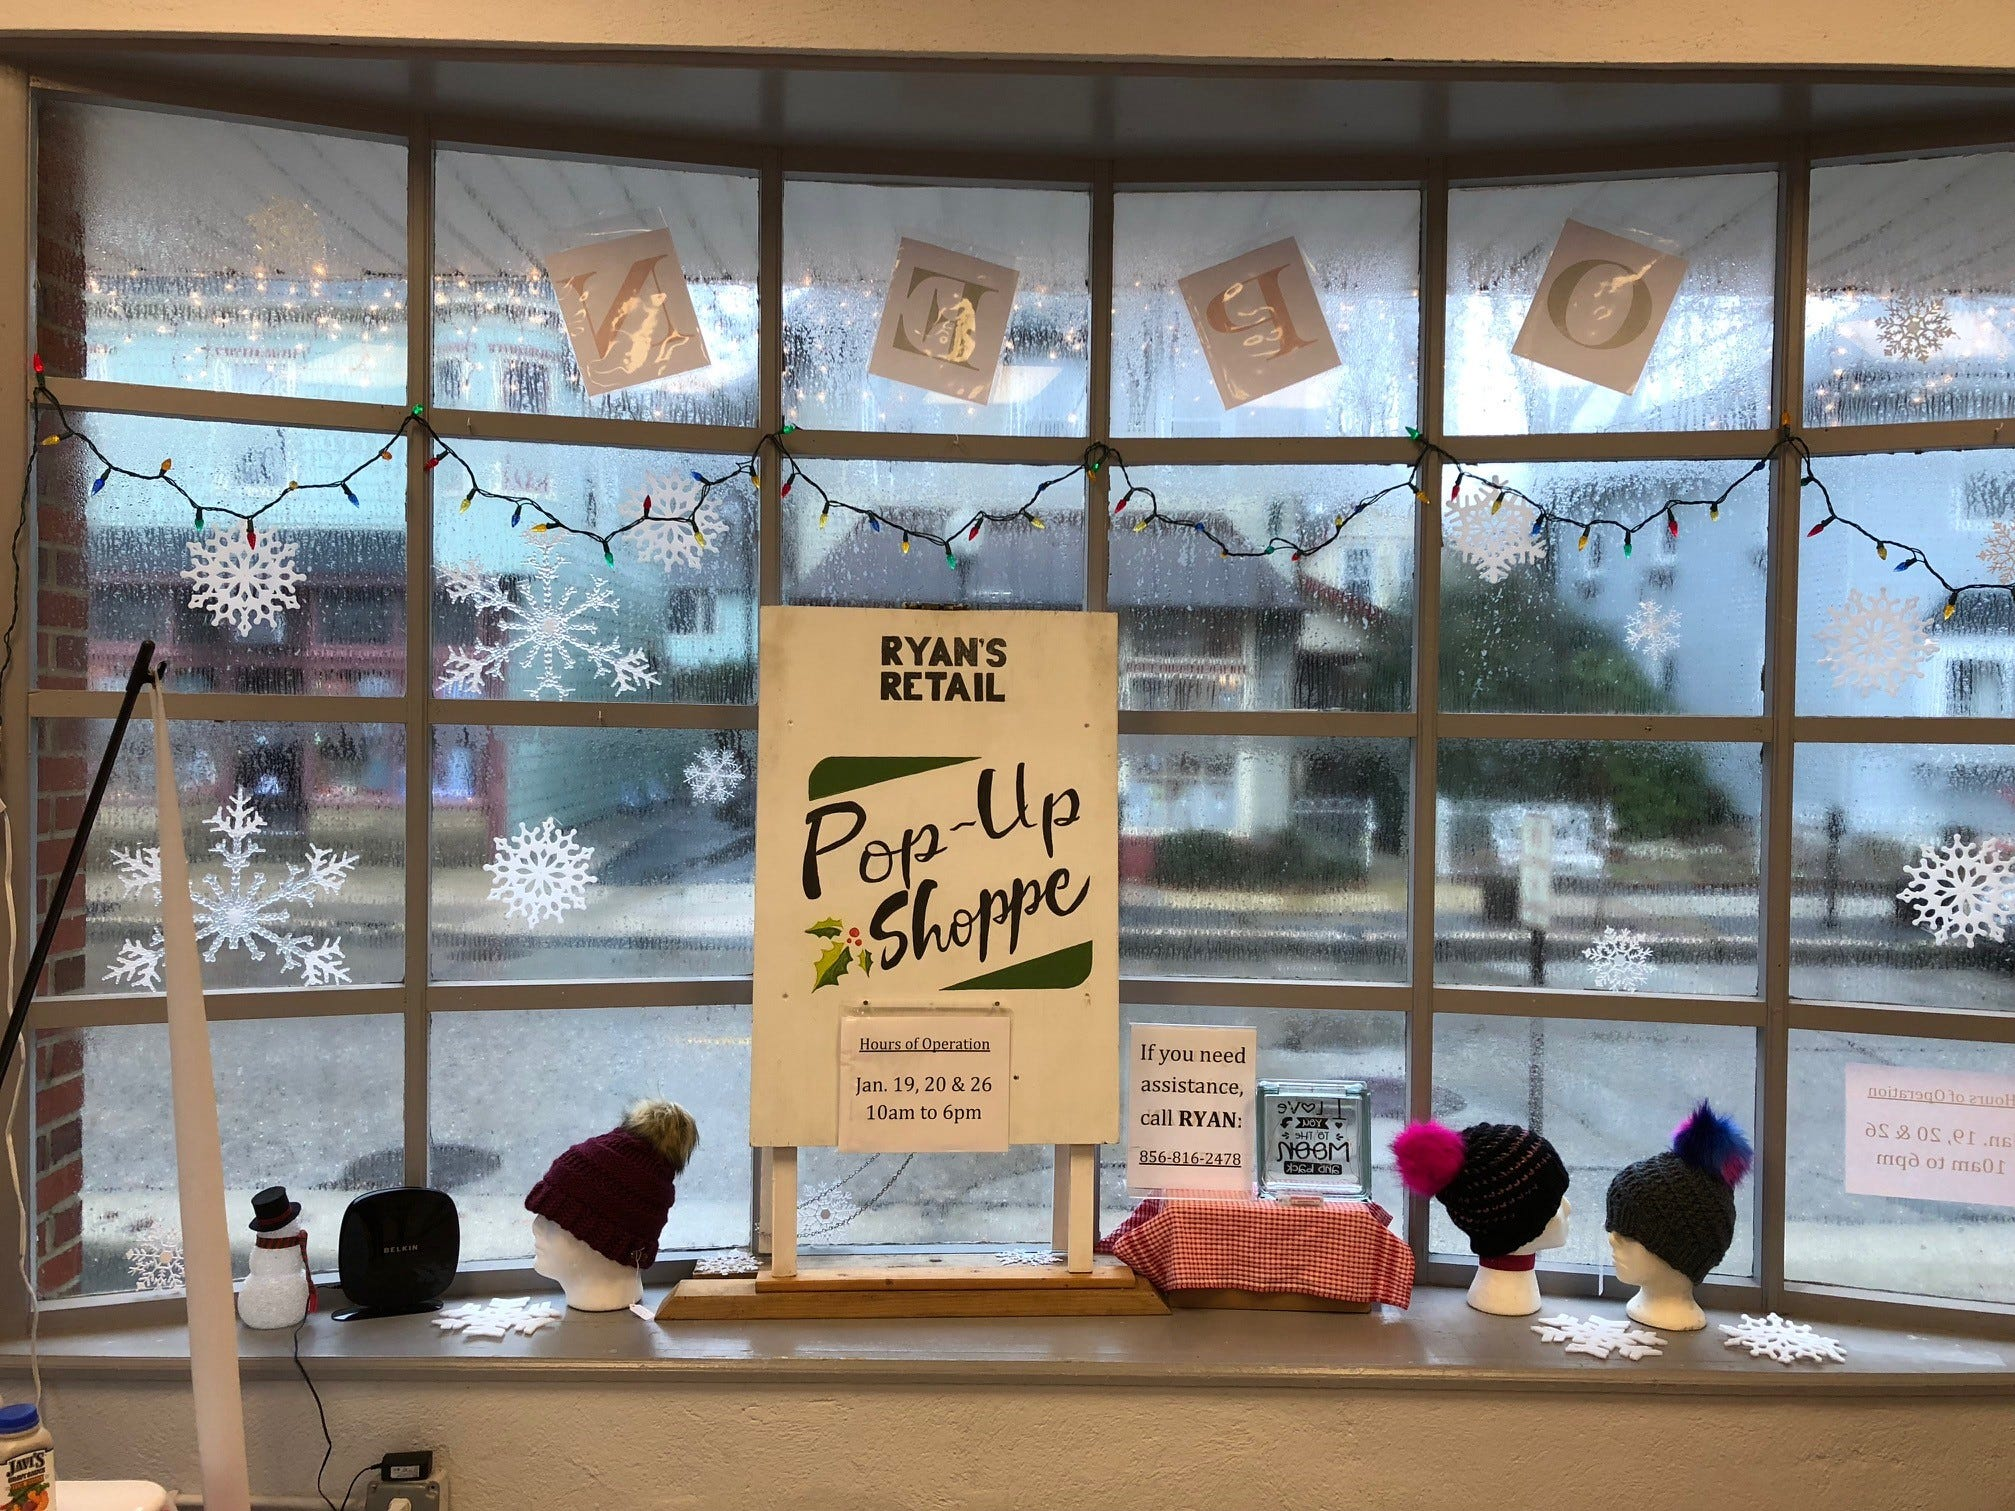 Ryan's Retail started as a holiday pop-up spot and has expanded into a Wednesday-through-Sunday schedule for local merchants. The market is held inside the old post office in Merchantville.